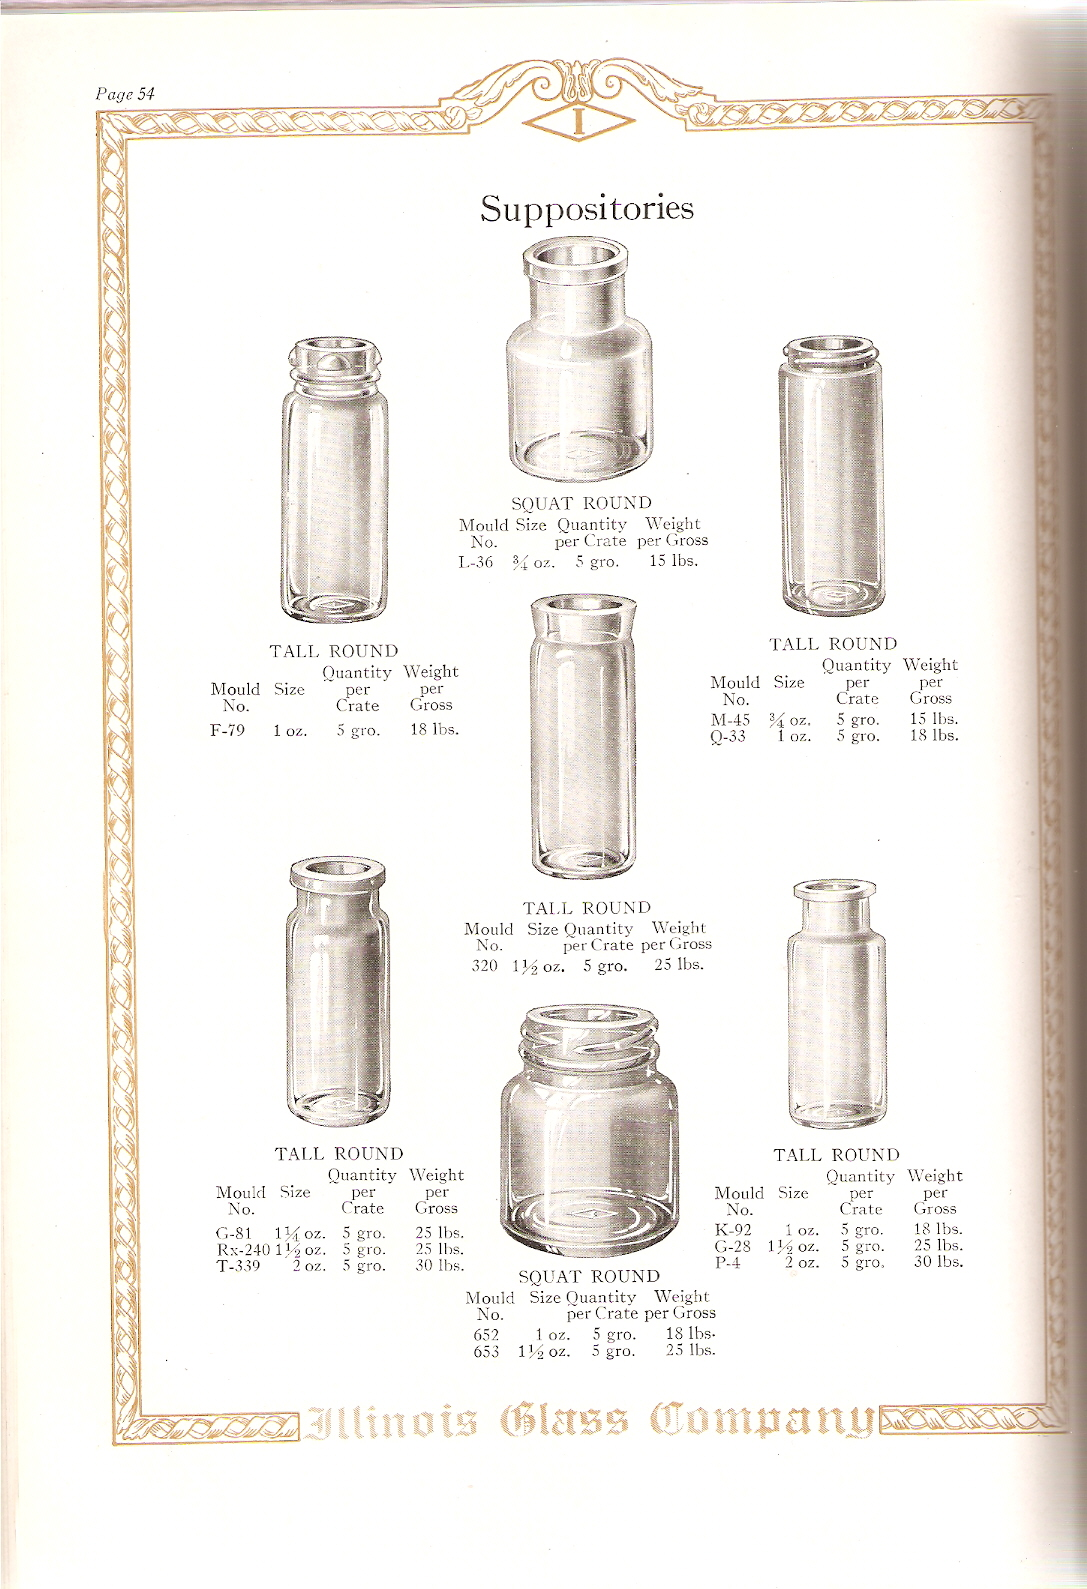 Illinois glass co 1926 catalog page 54 suppositories yes bottles for such biocorpaavc Gallery